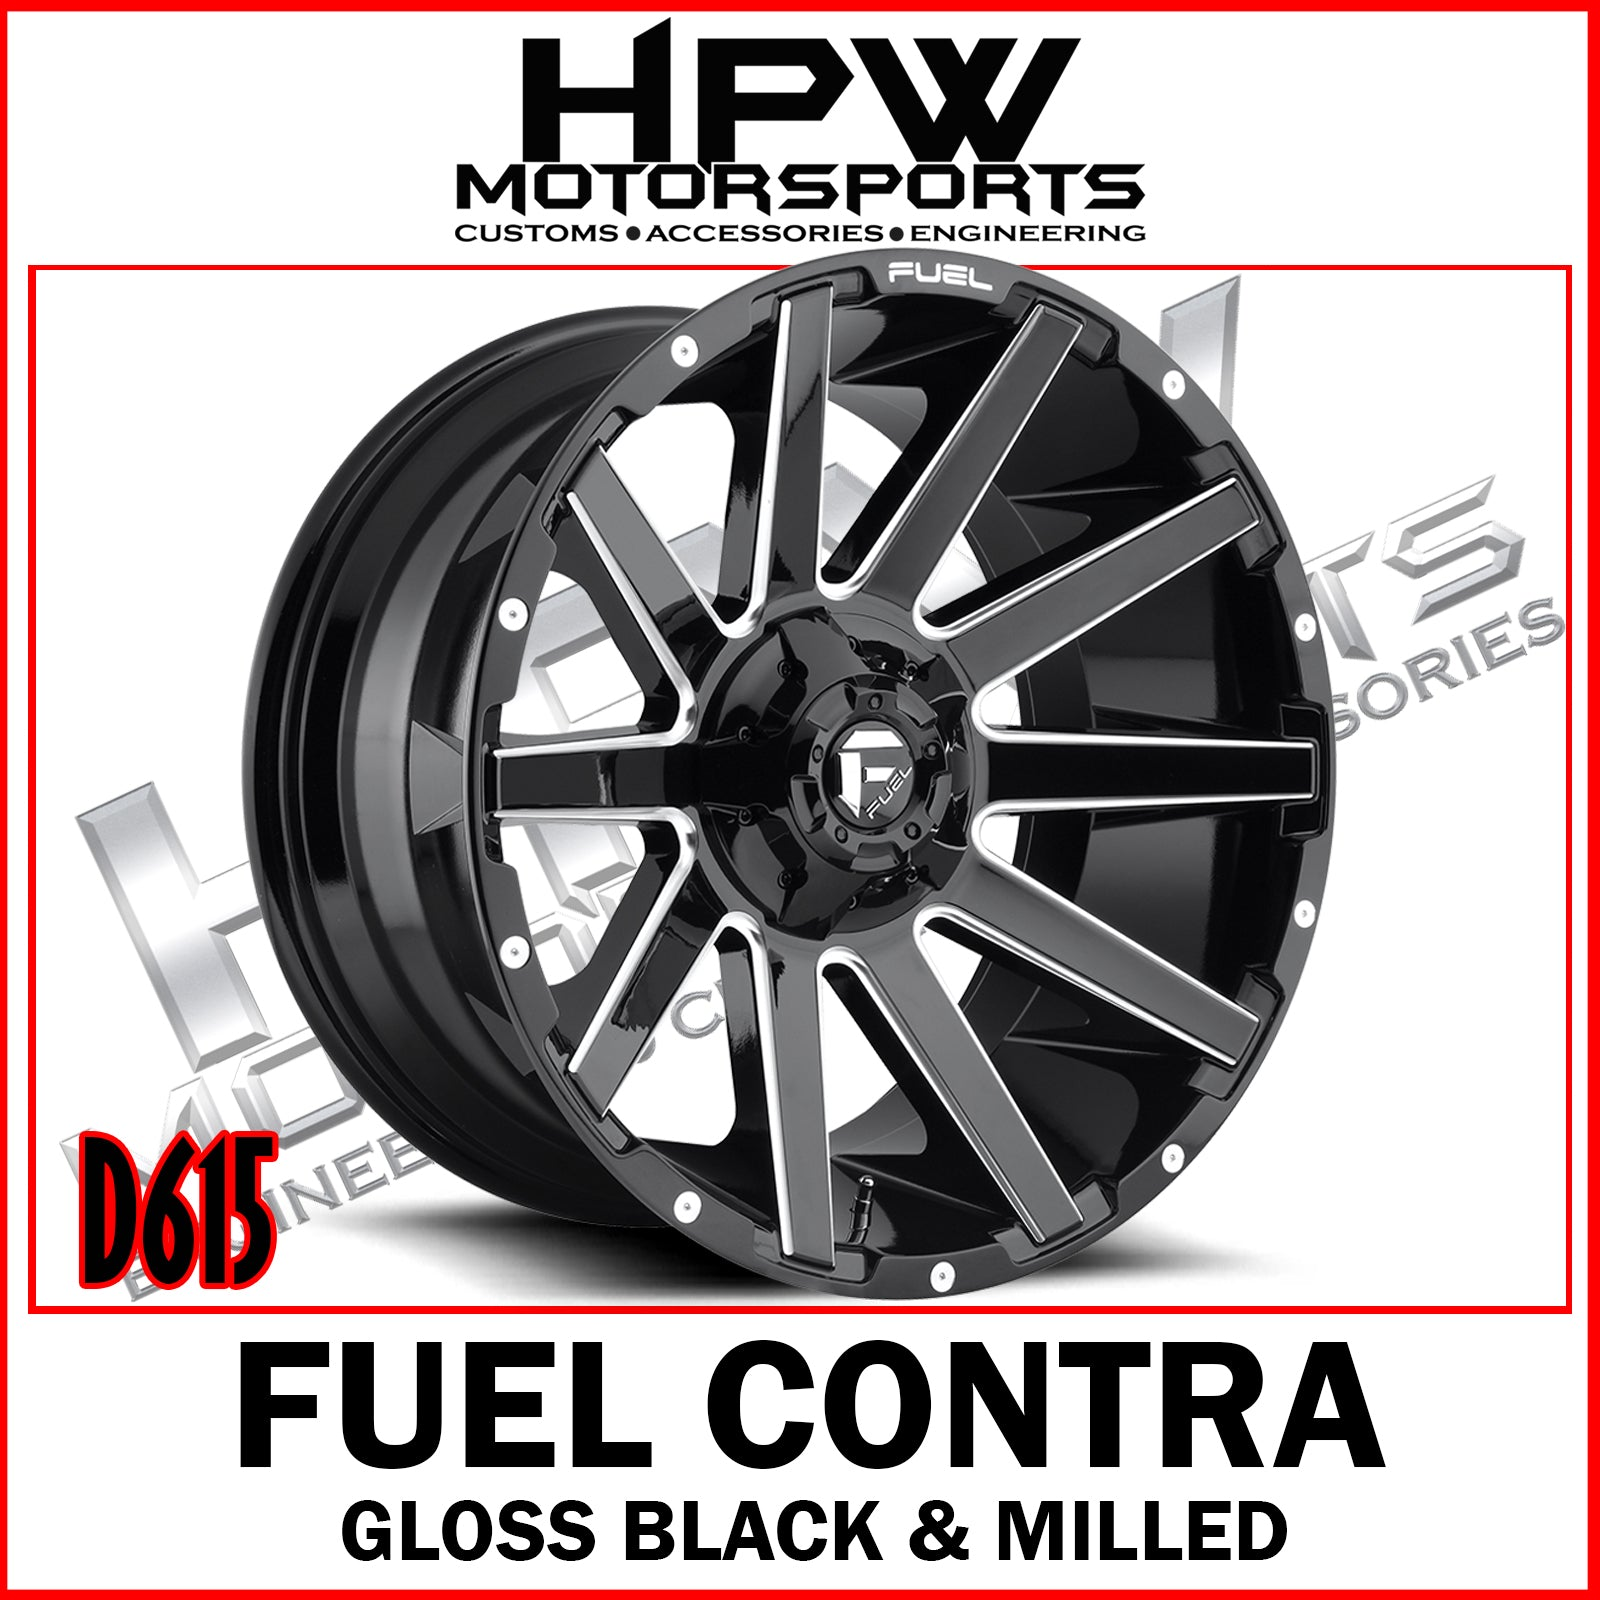 (20x10 -19) D615 FUEL CONTRA - GLOSS BLACK & MILLED - Set of 4